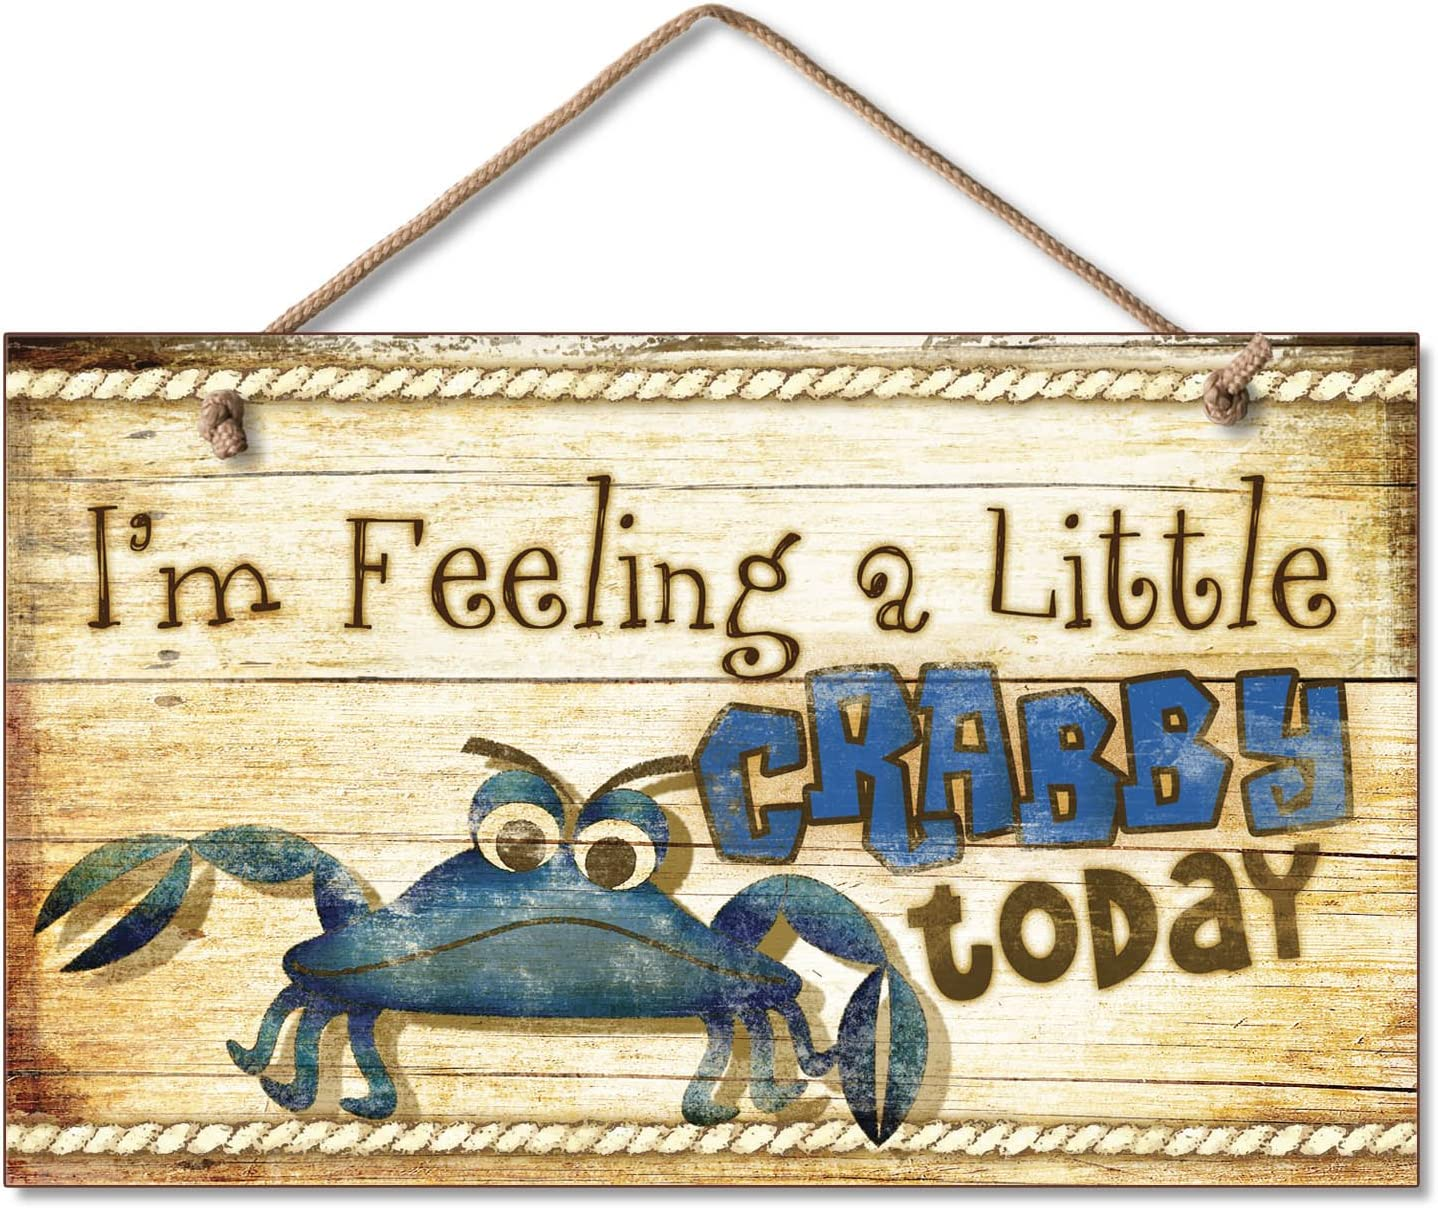 Highland Graphics New Funny Feeling Crabby Sign Wall Plaque Nautical Decor